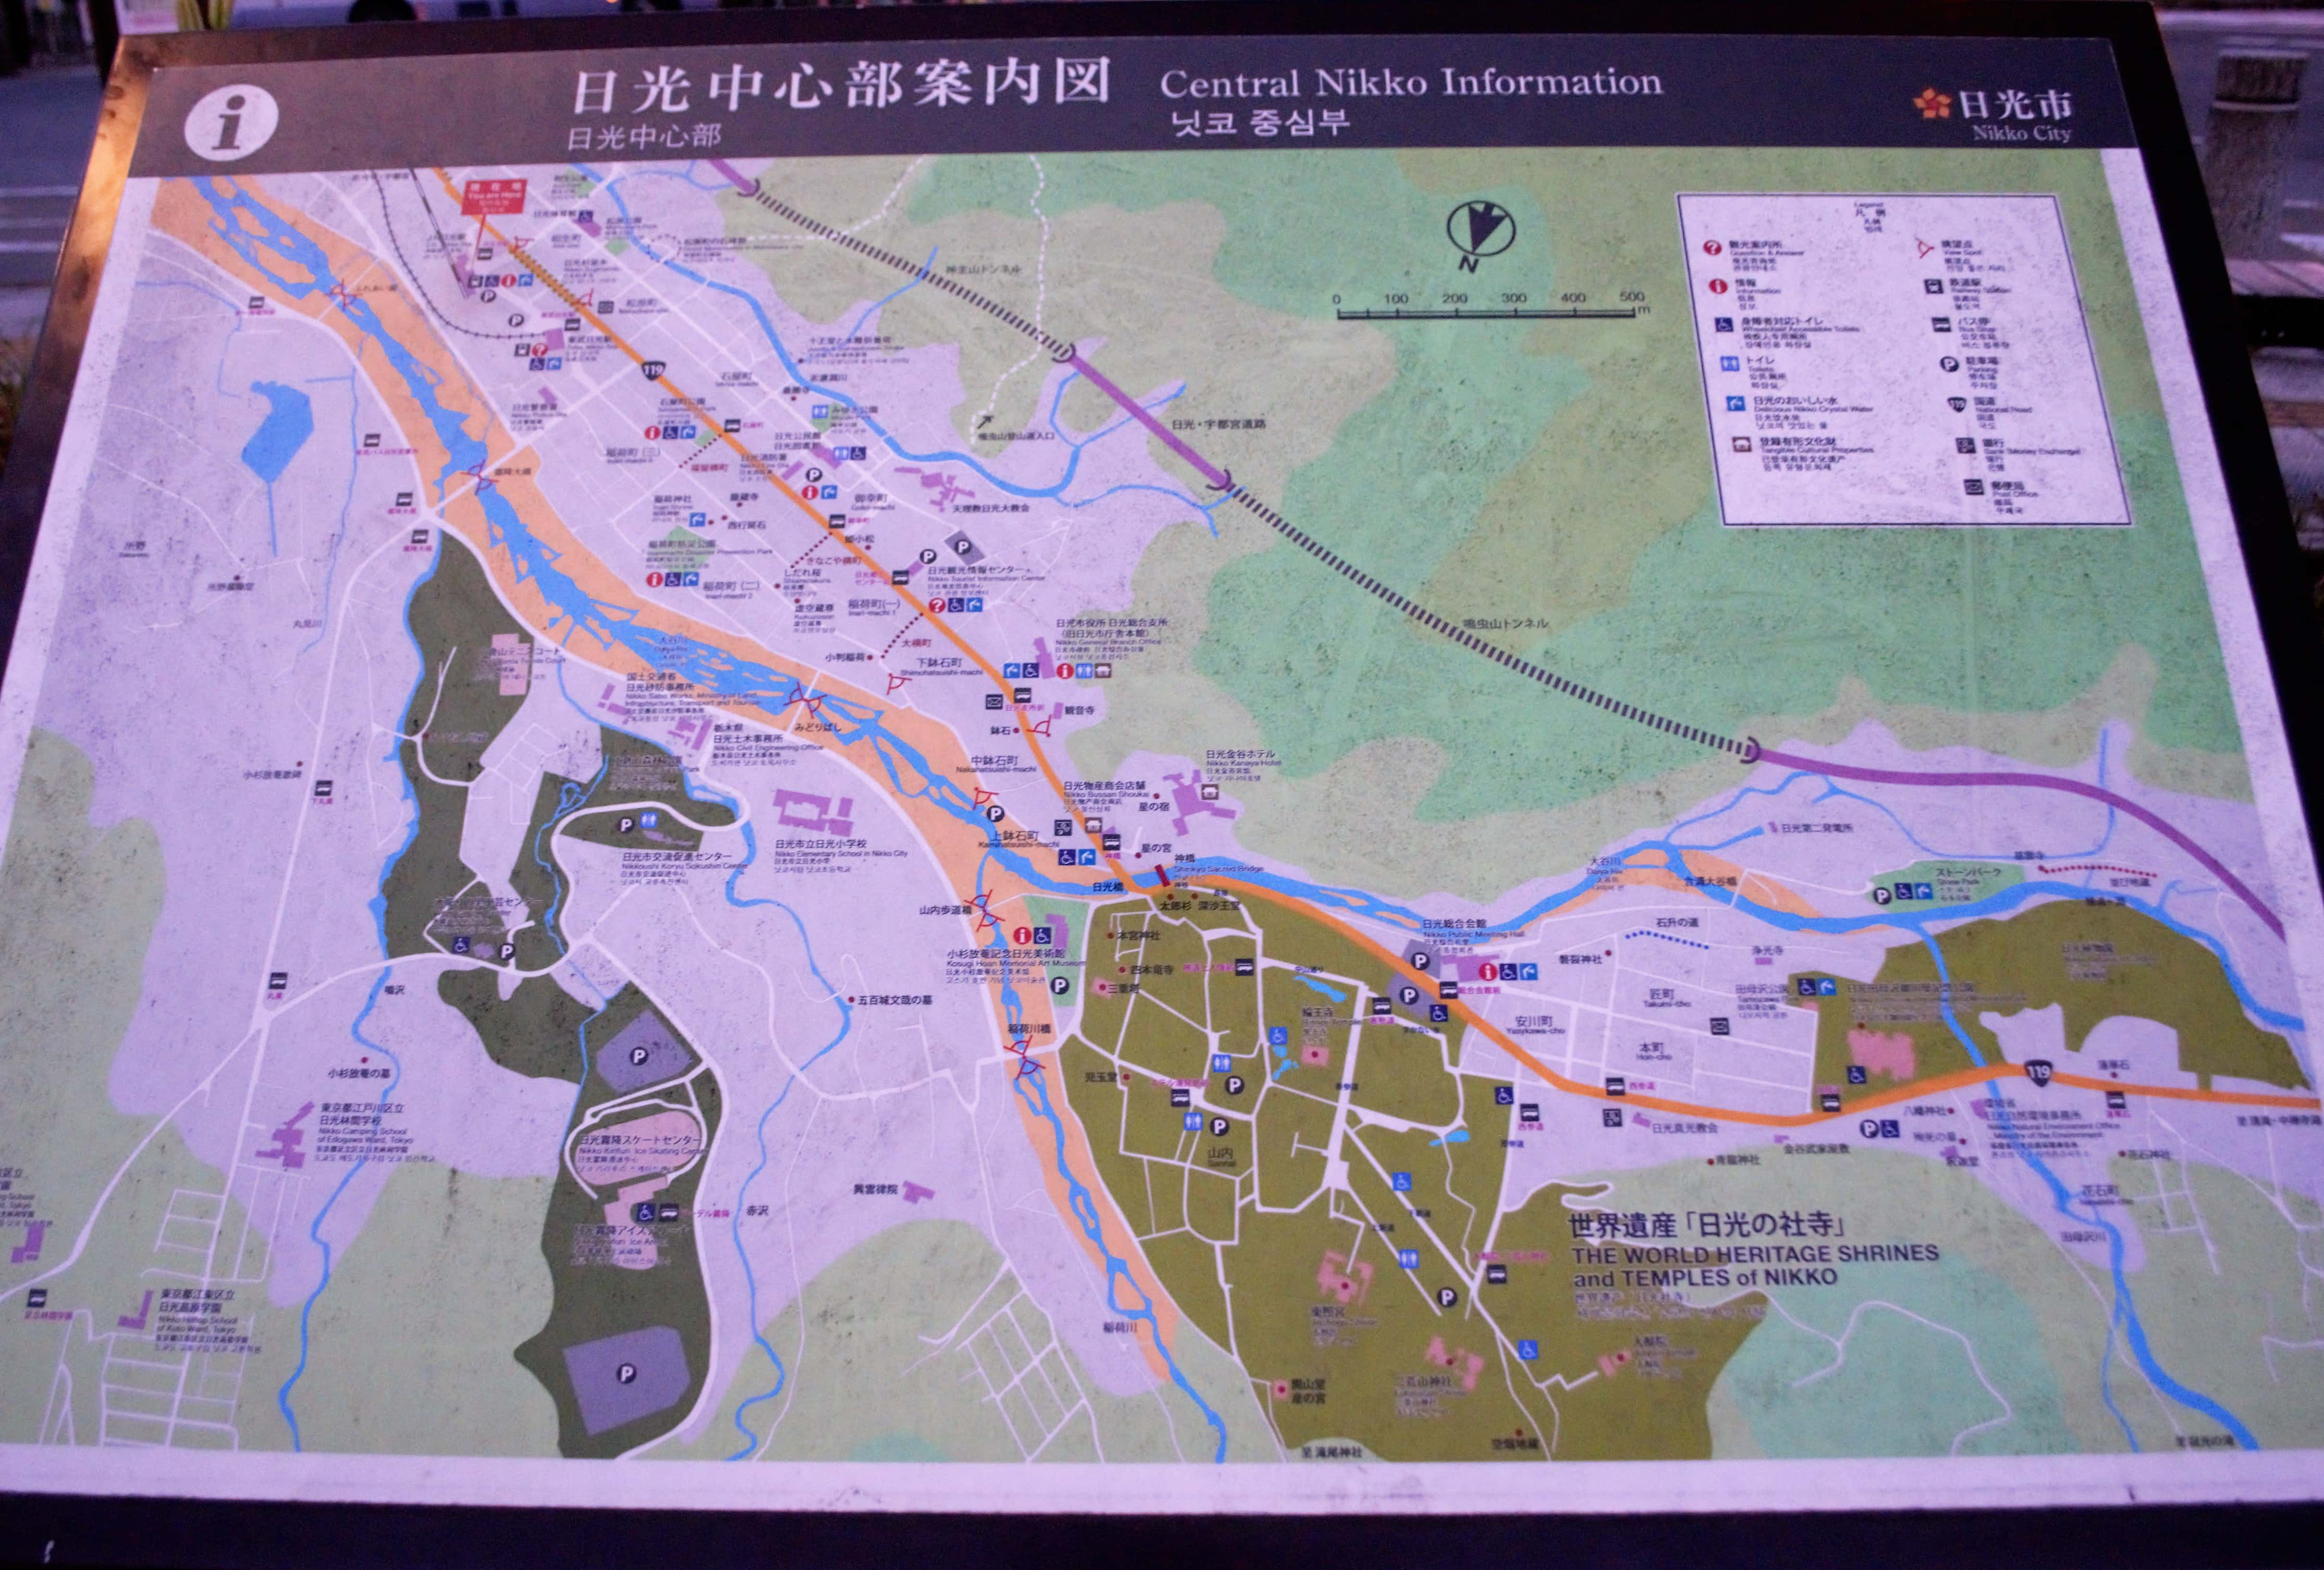 Map of NIkko area